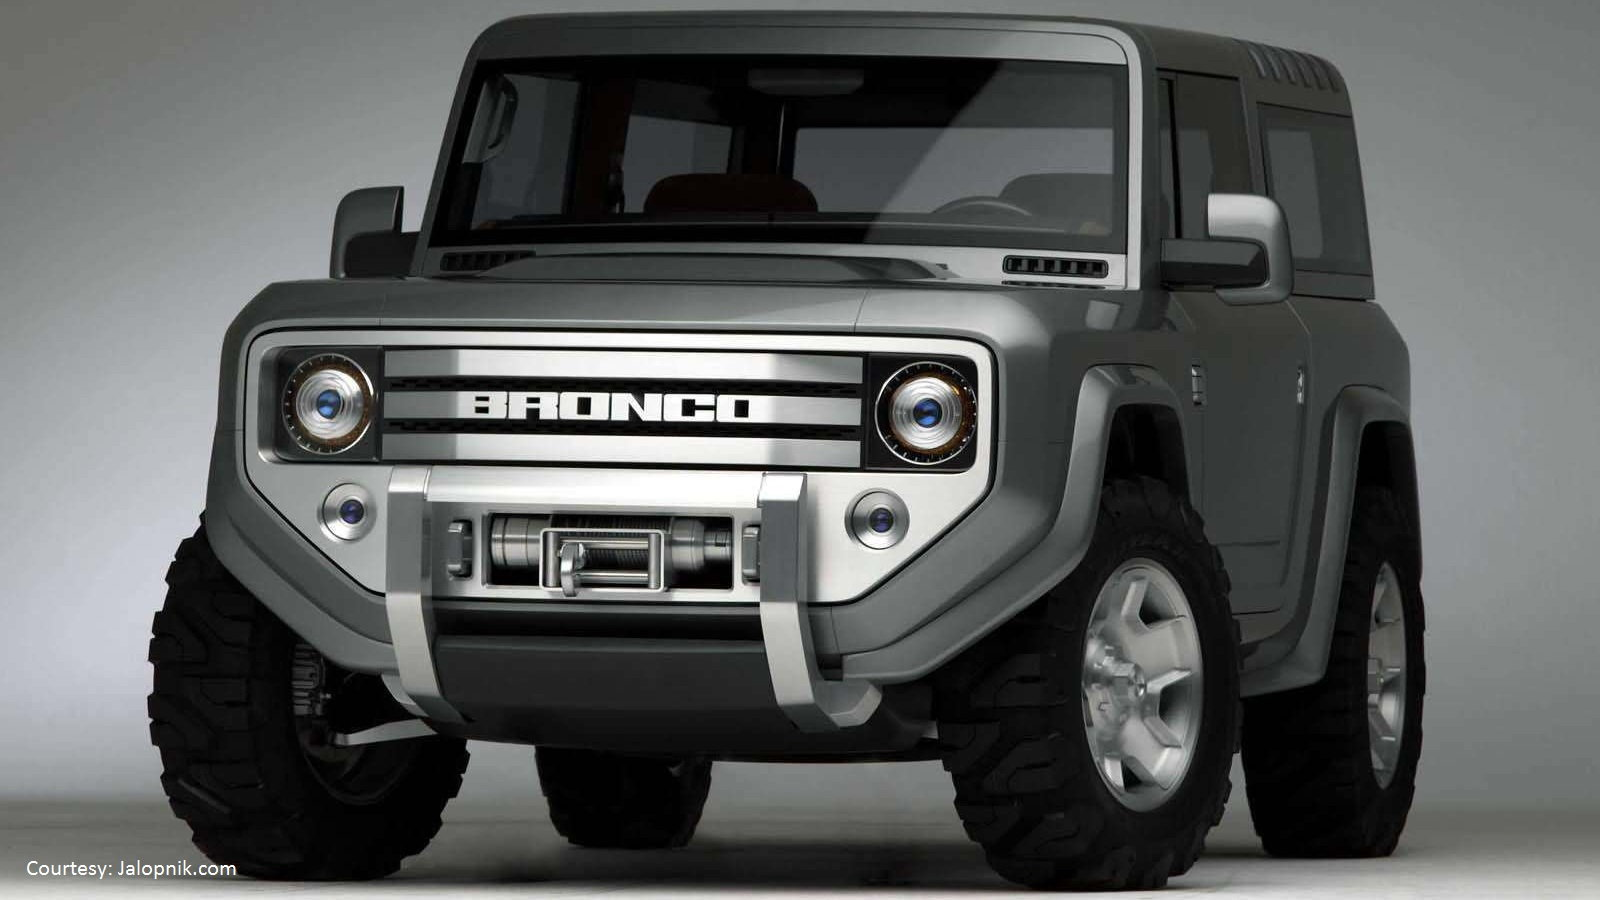 Both the Bronco and Ranger Will Be Built in the U.S.